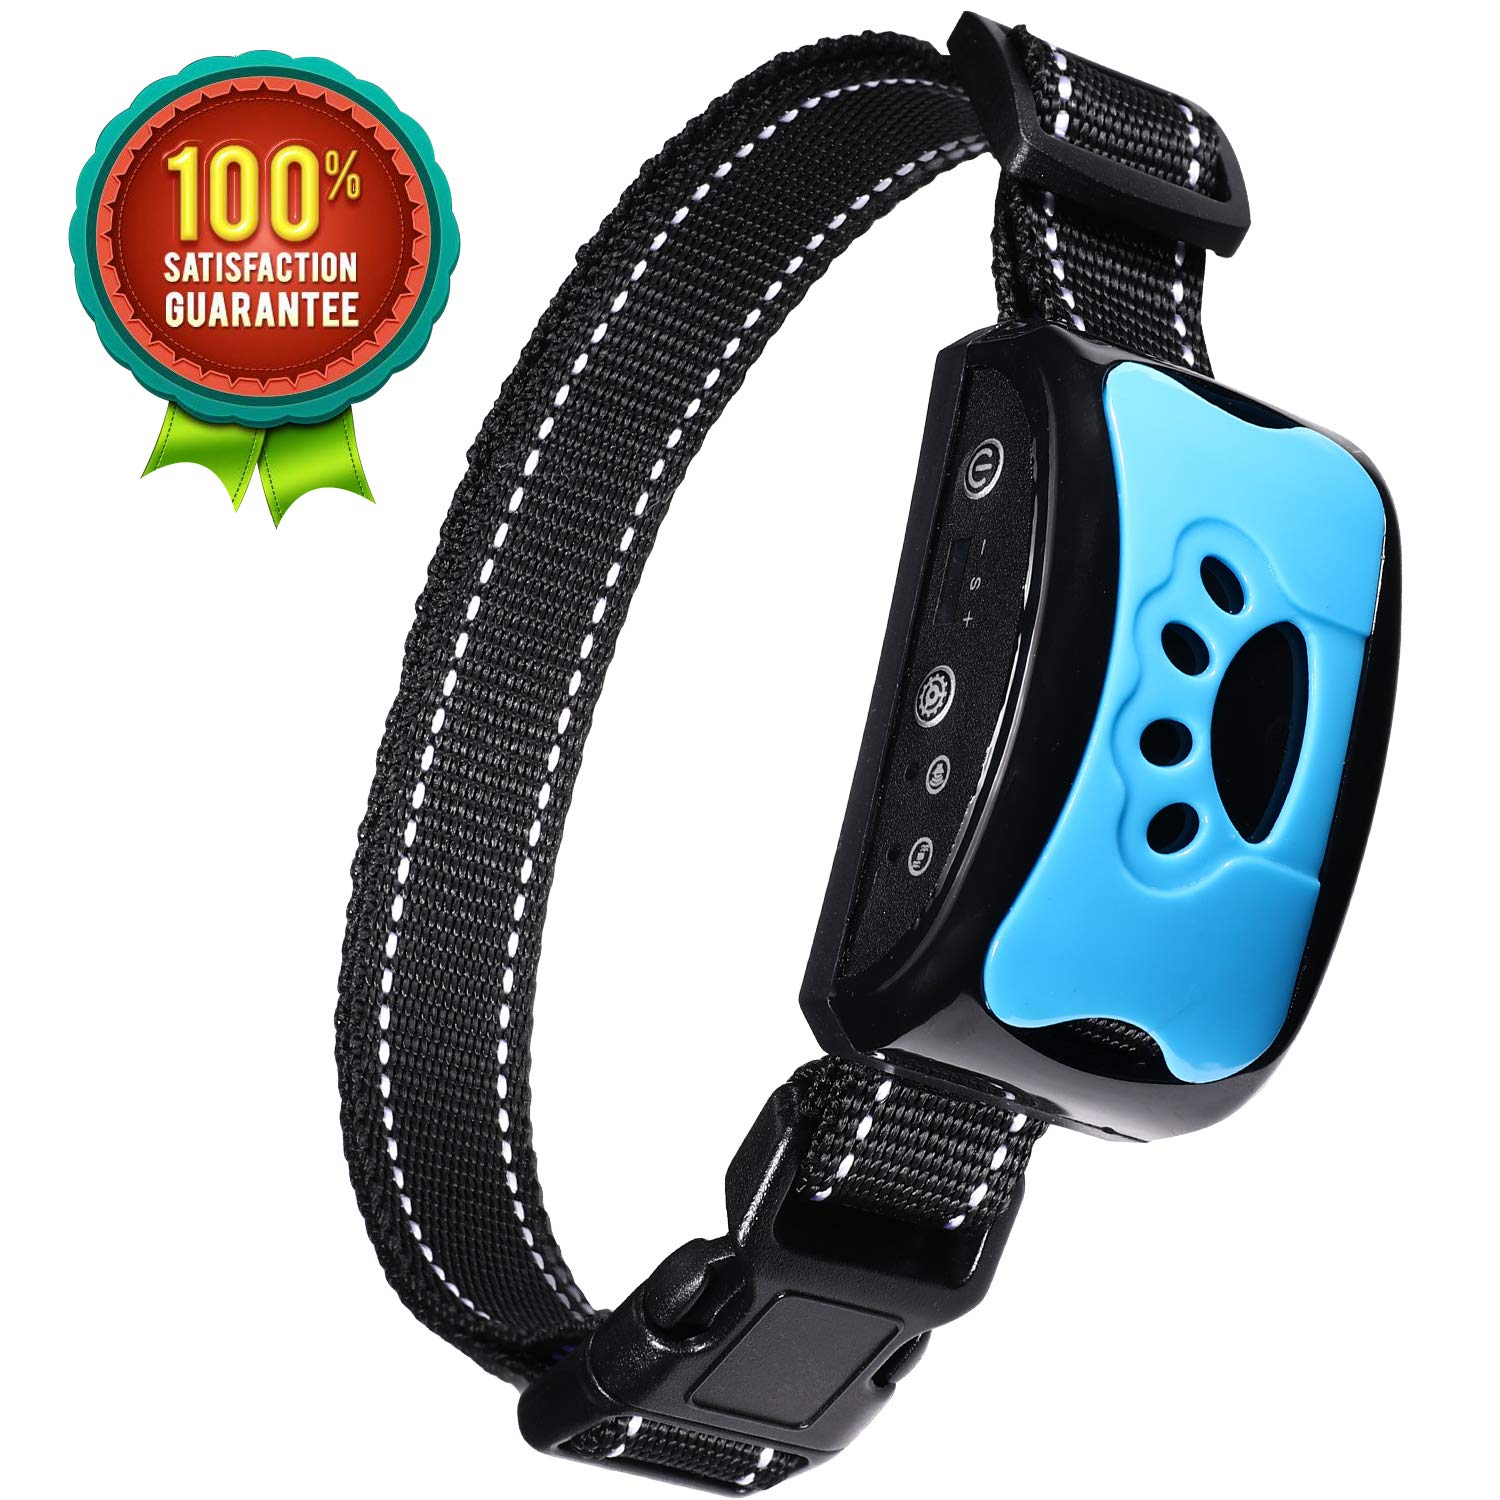 BOBOO Bark Collar [2019 Superhuman CHIP] Best for Small Medium Large Dogs, Most Effective Anti Bark Device 7 Sound and Vibro Modes, No Harmful Shock, No Pain for a Dog, Hypoallergenic by BOBOO